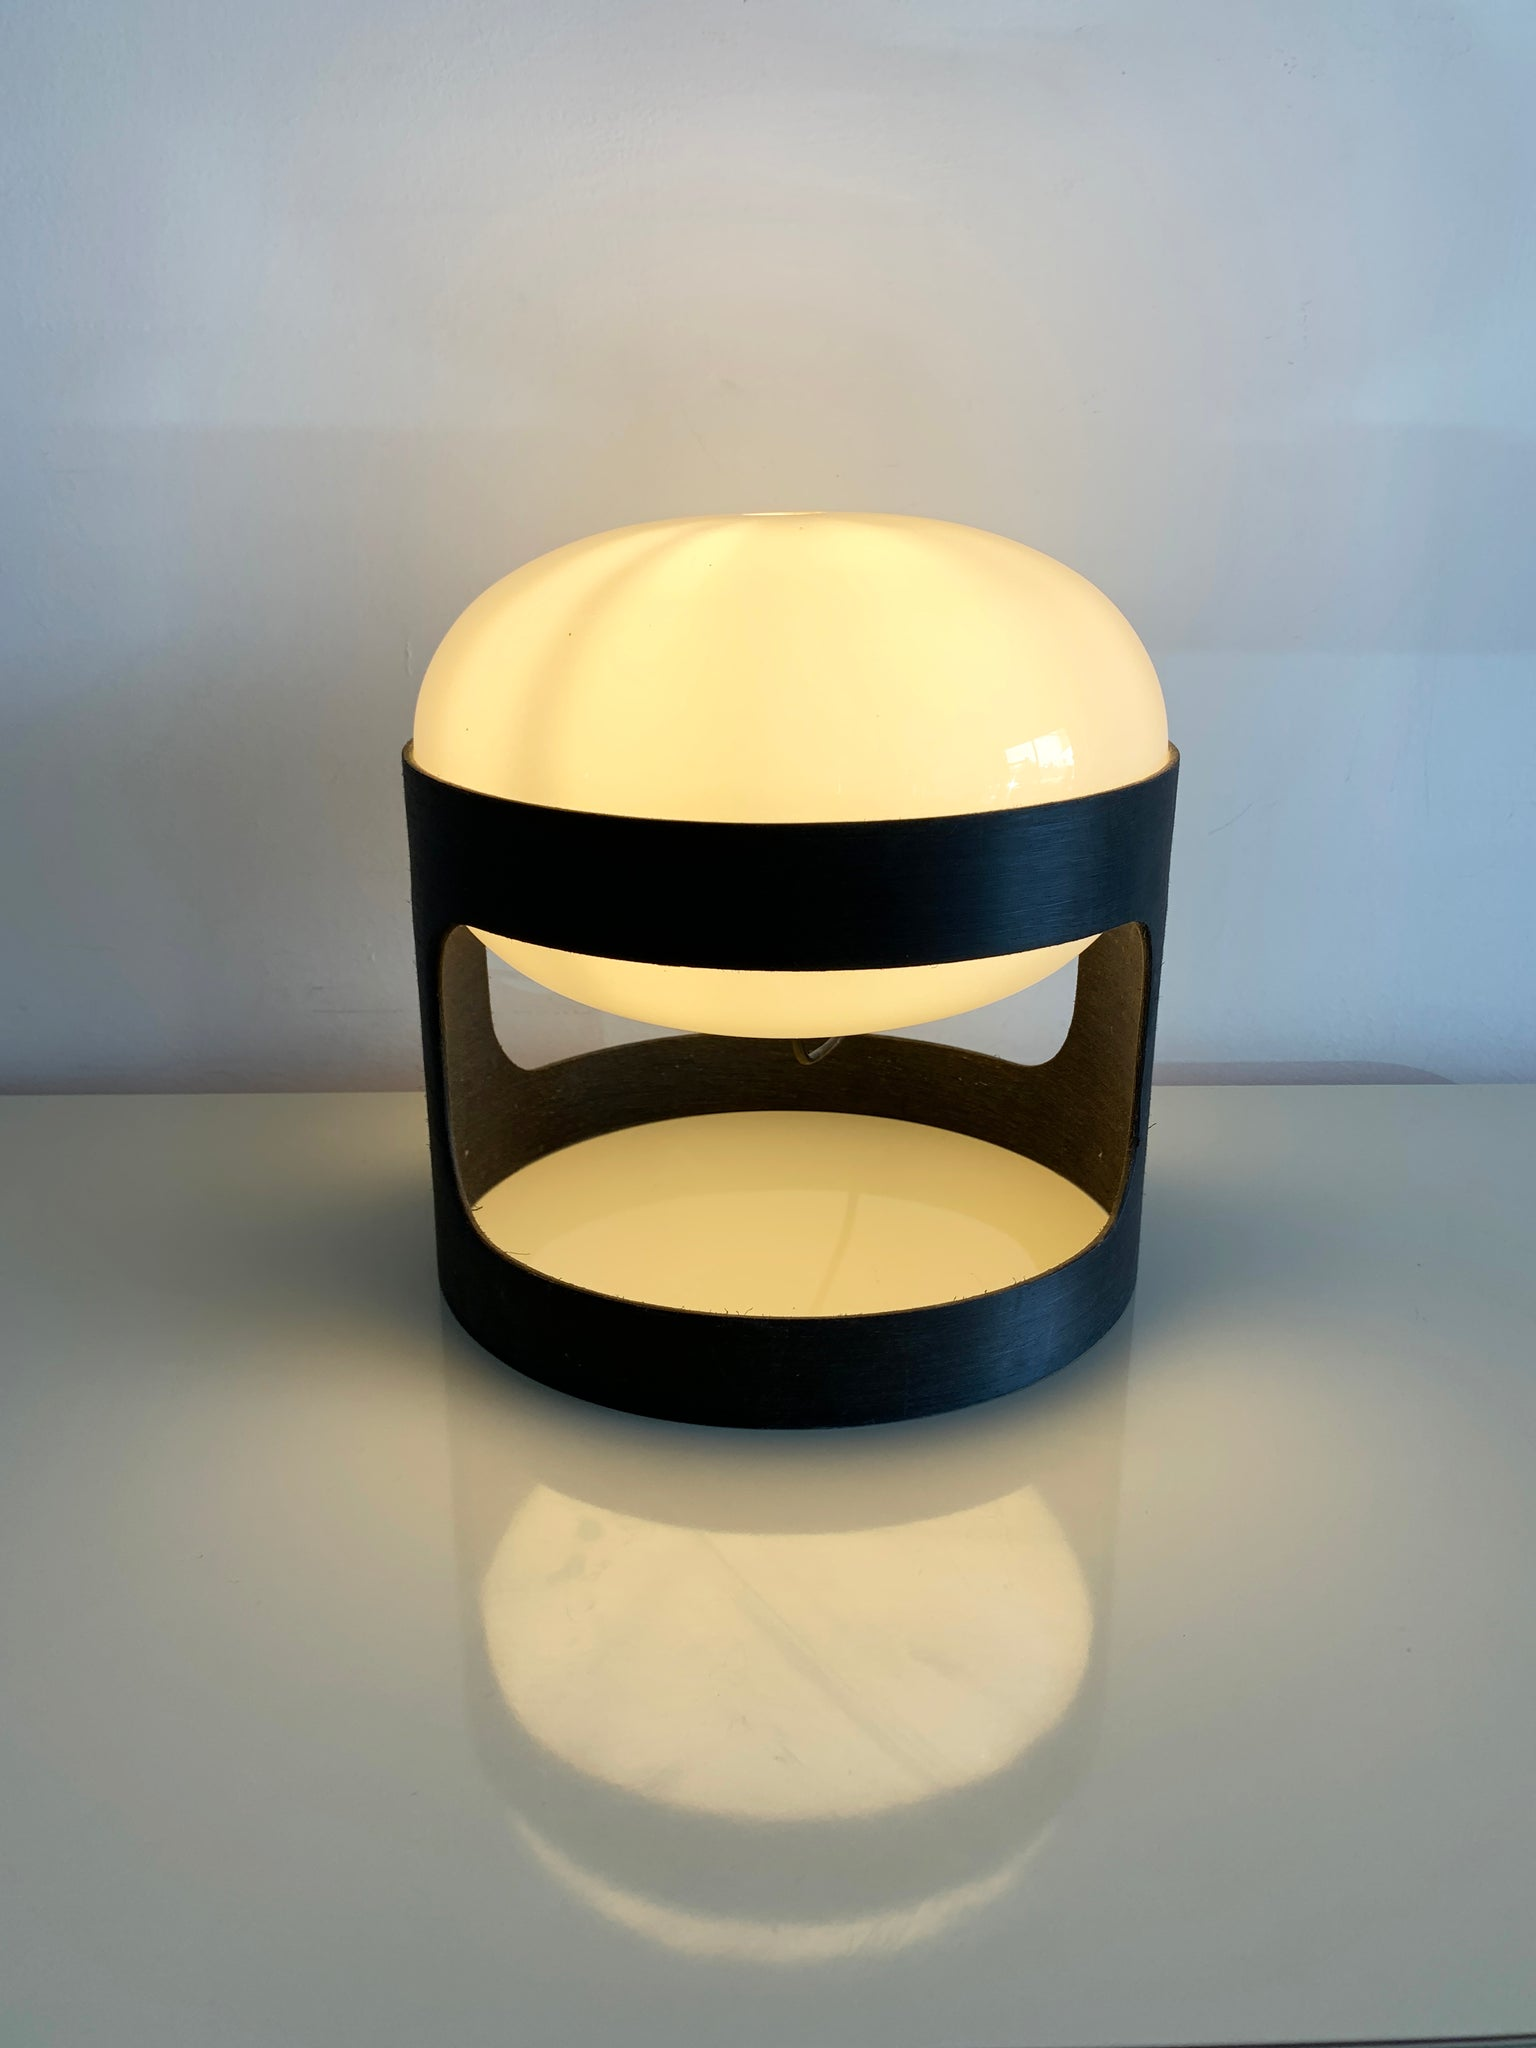 Pre-Production Ebanil KD 27 Table Lamp by Joe Colombo for Kartell